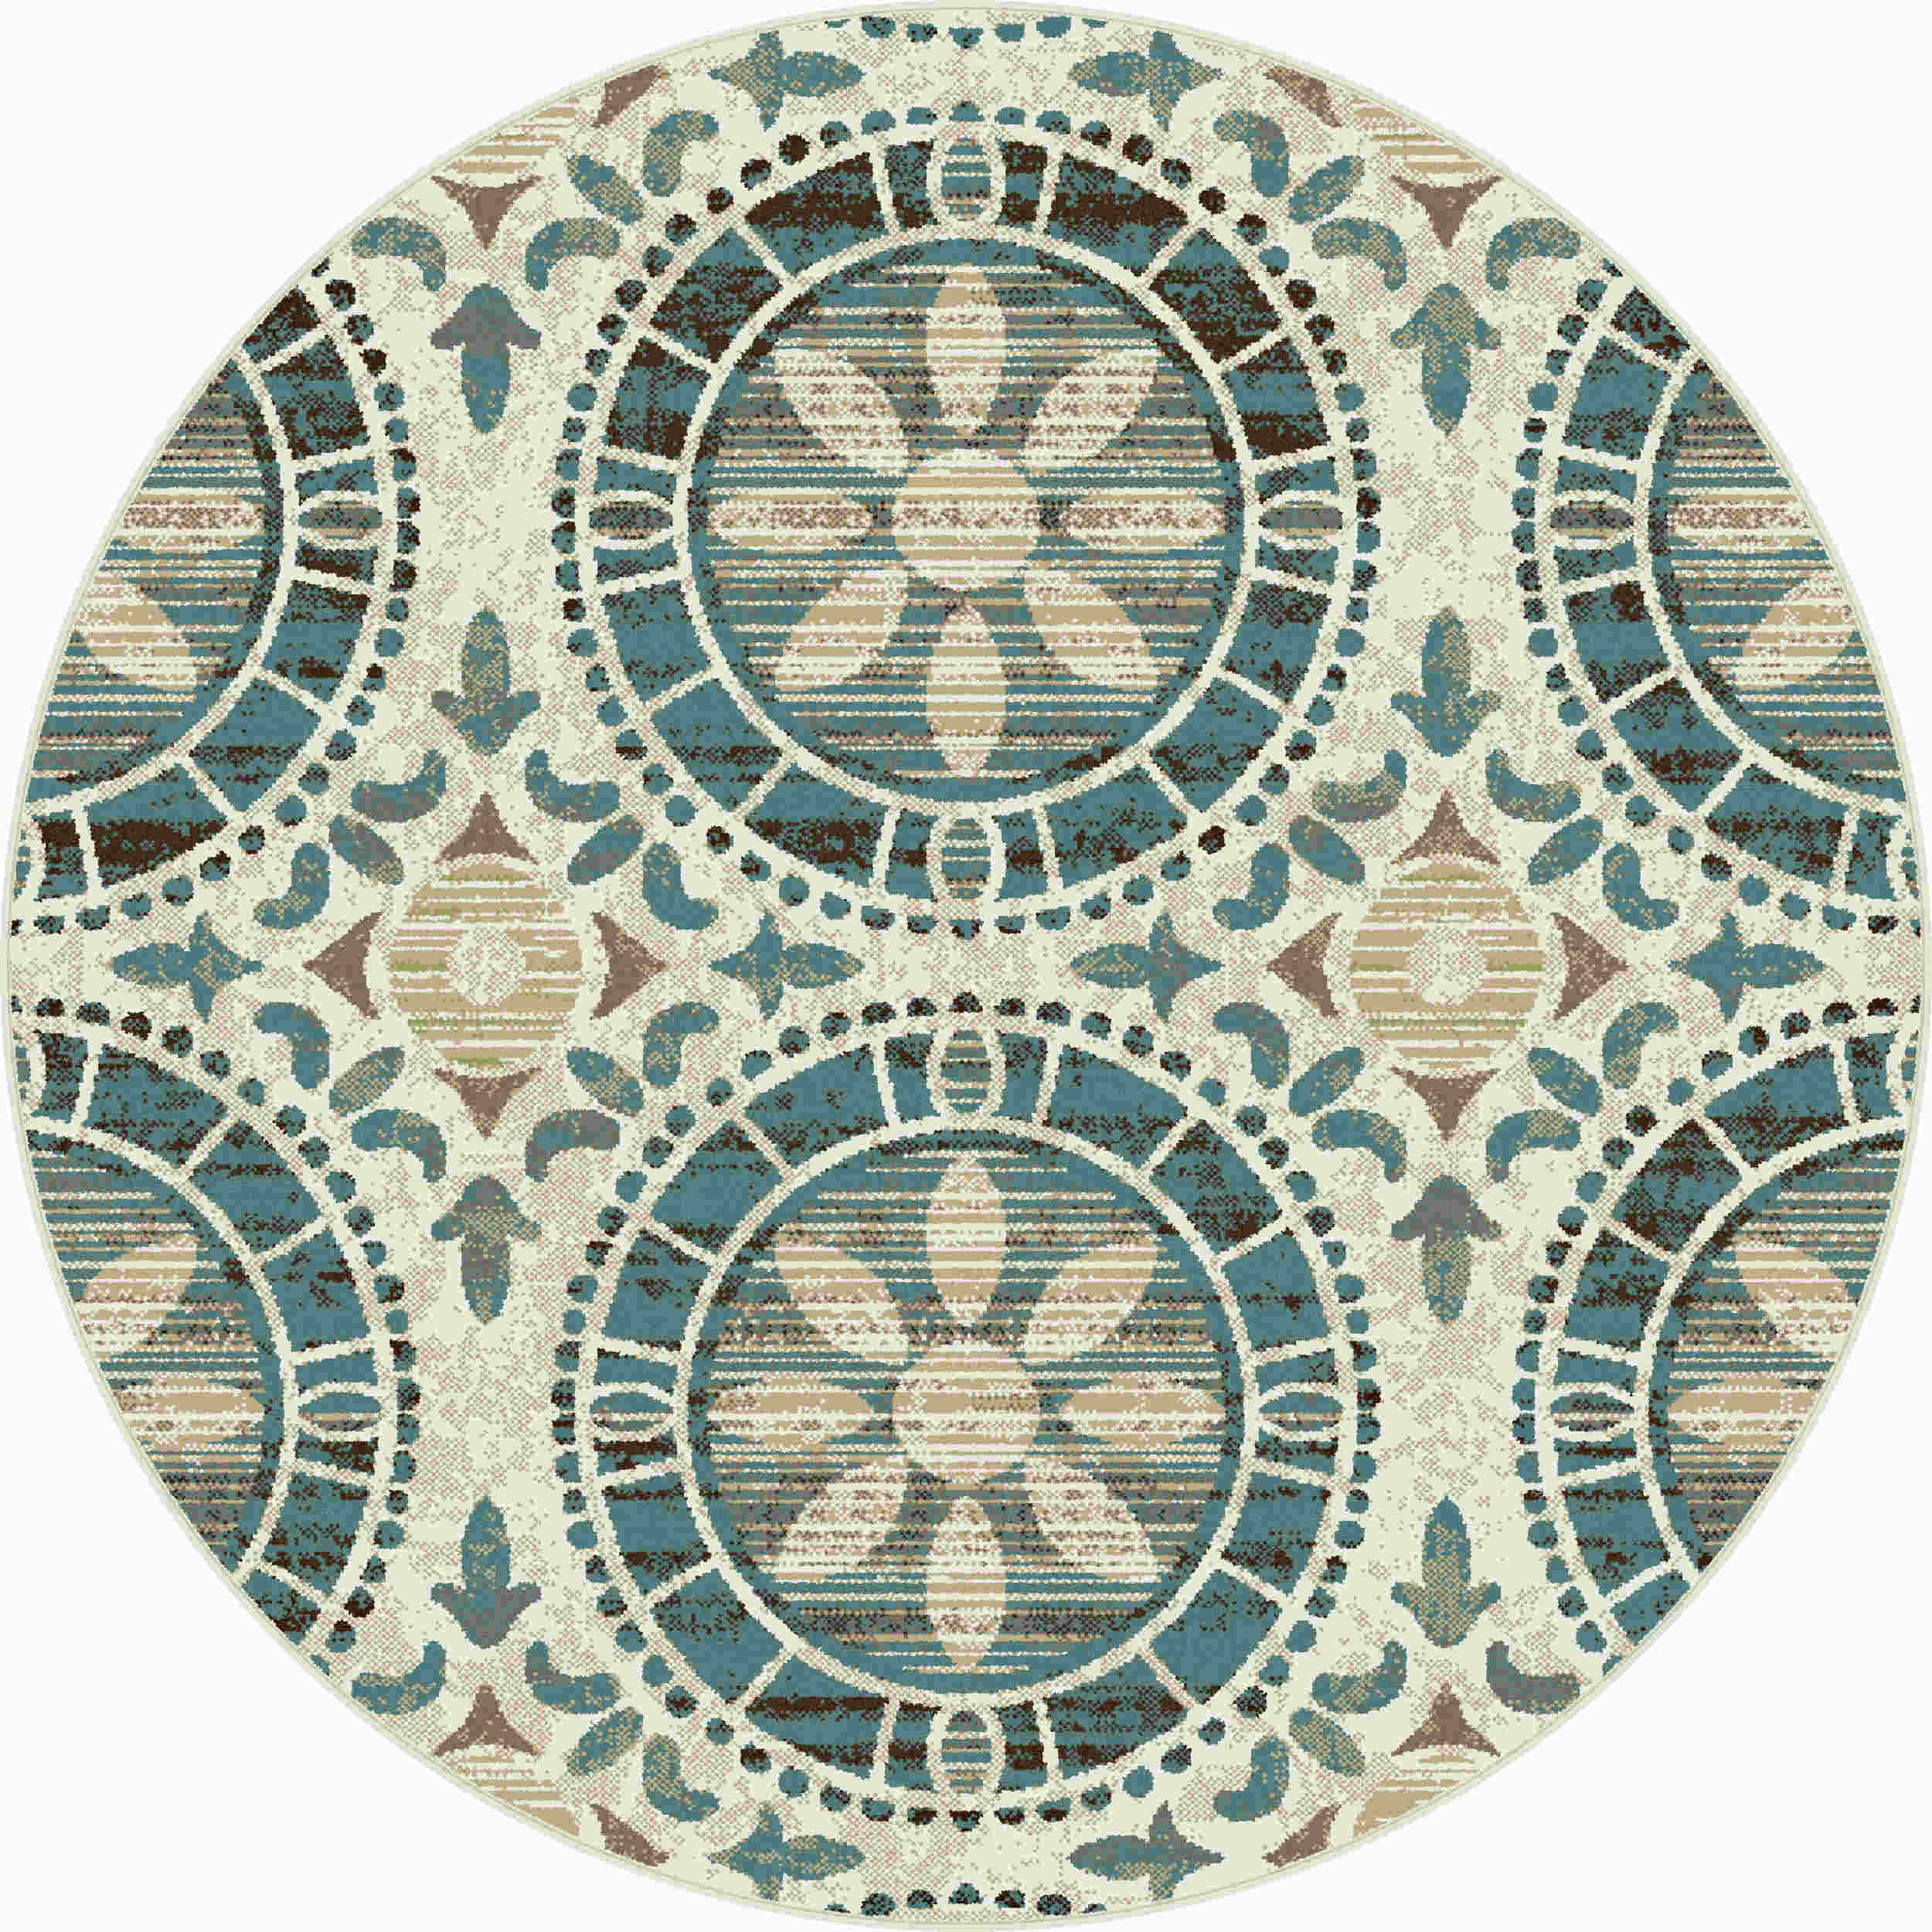 Deco Dco1017 Ivory Transitional Area Rug